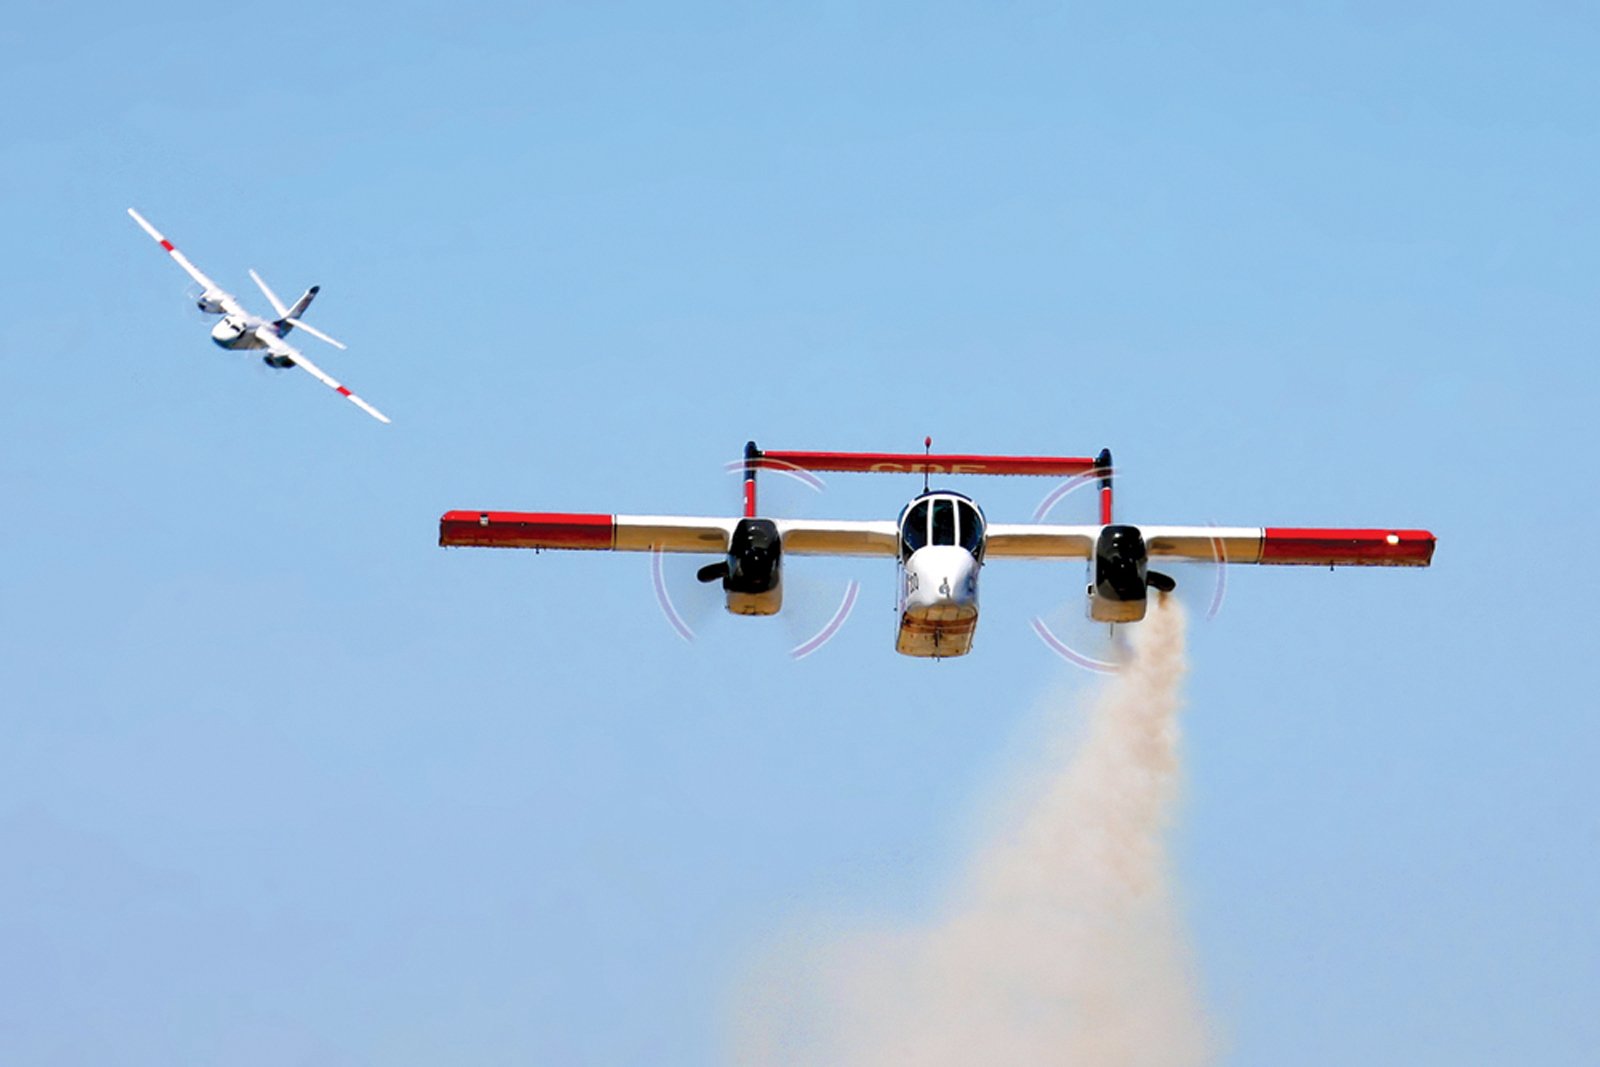 Nevada County AirFest: Unique Air Show in the Forest